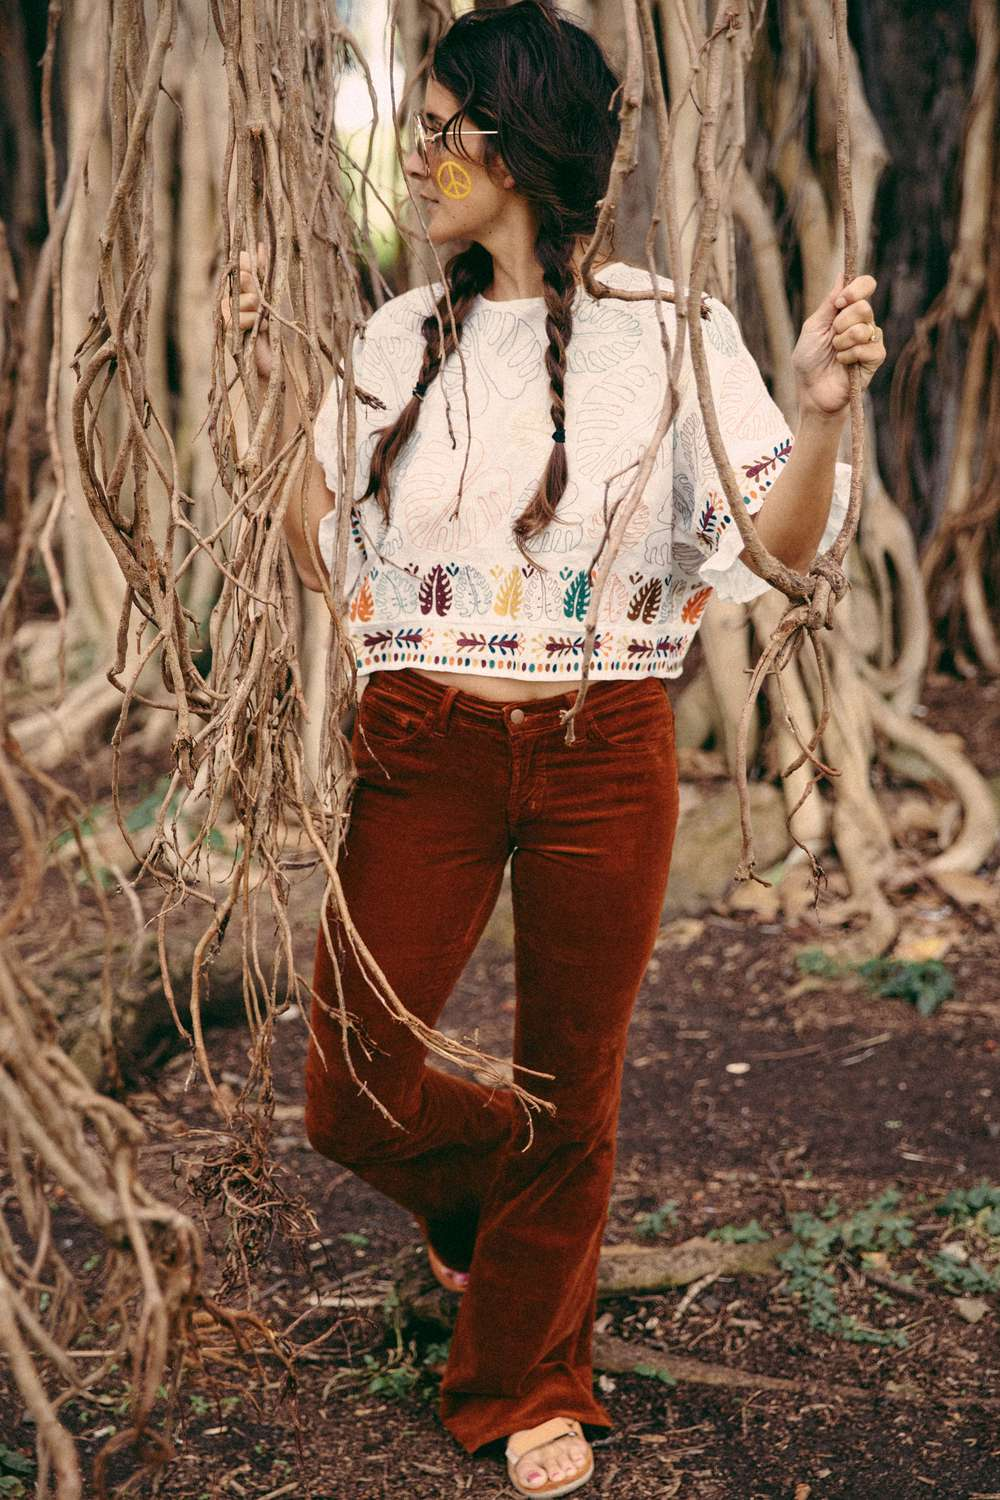 Tara Rock wearing a Woodstock inspired outfit